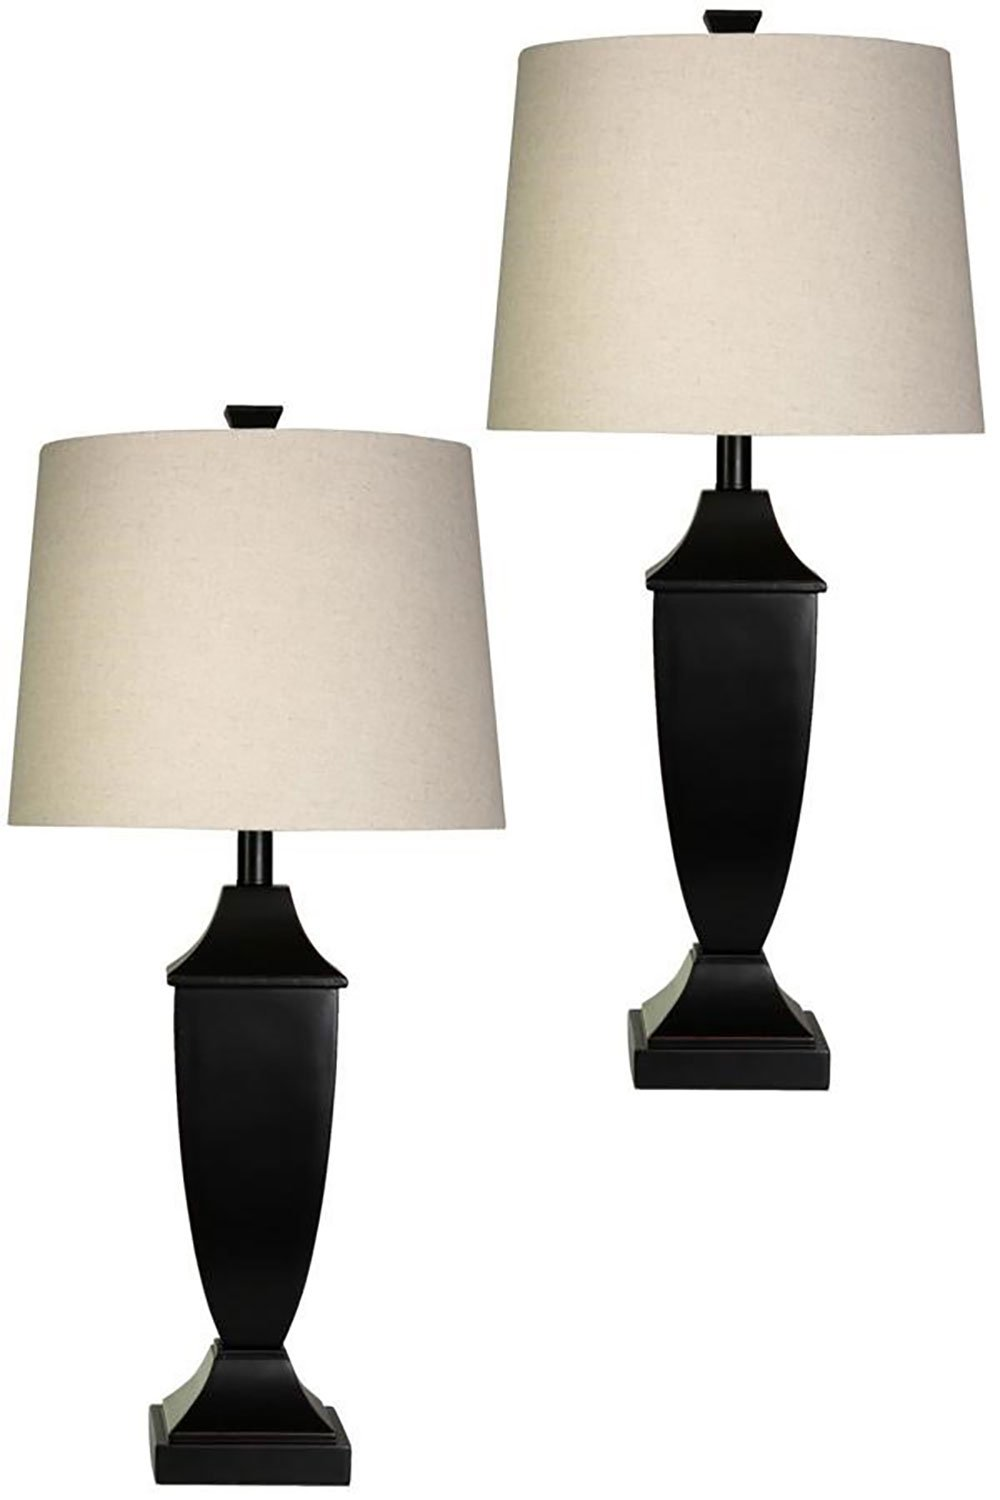 StyleCraft Classic Table Lamp w/ Bronze Wood Finish And Round Shades, Set of 2